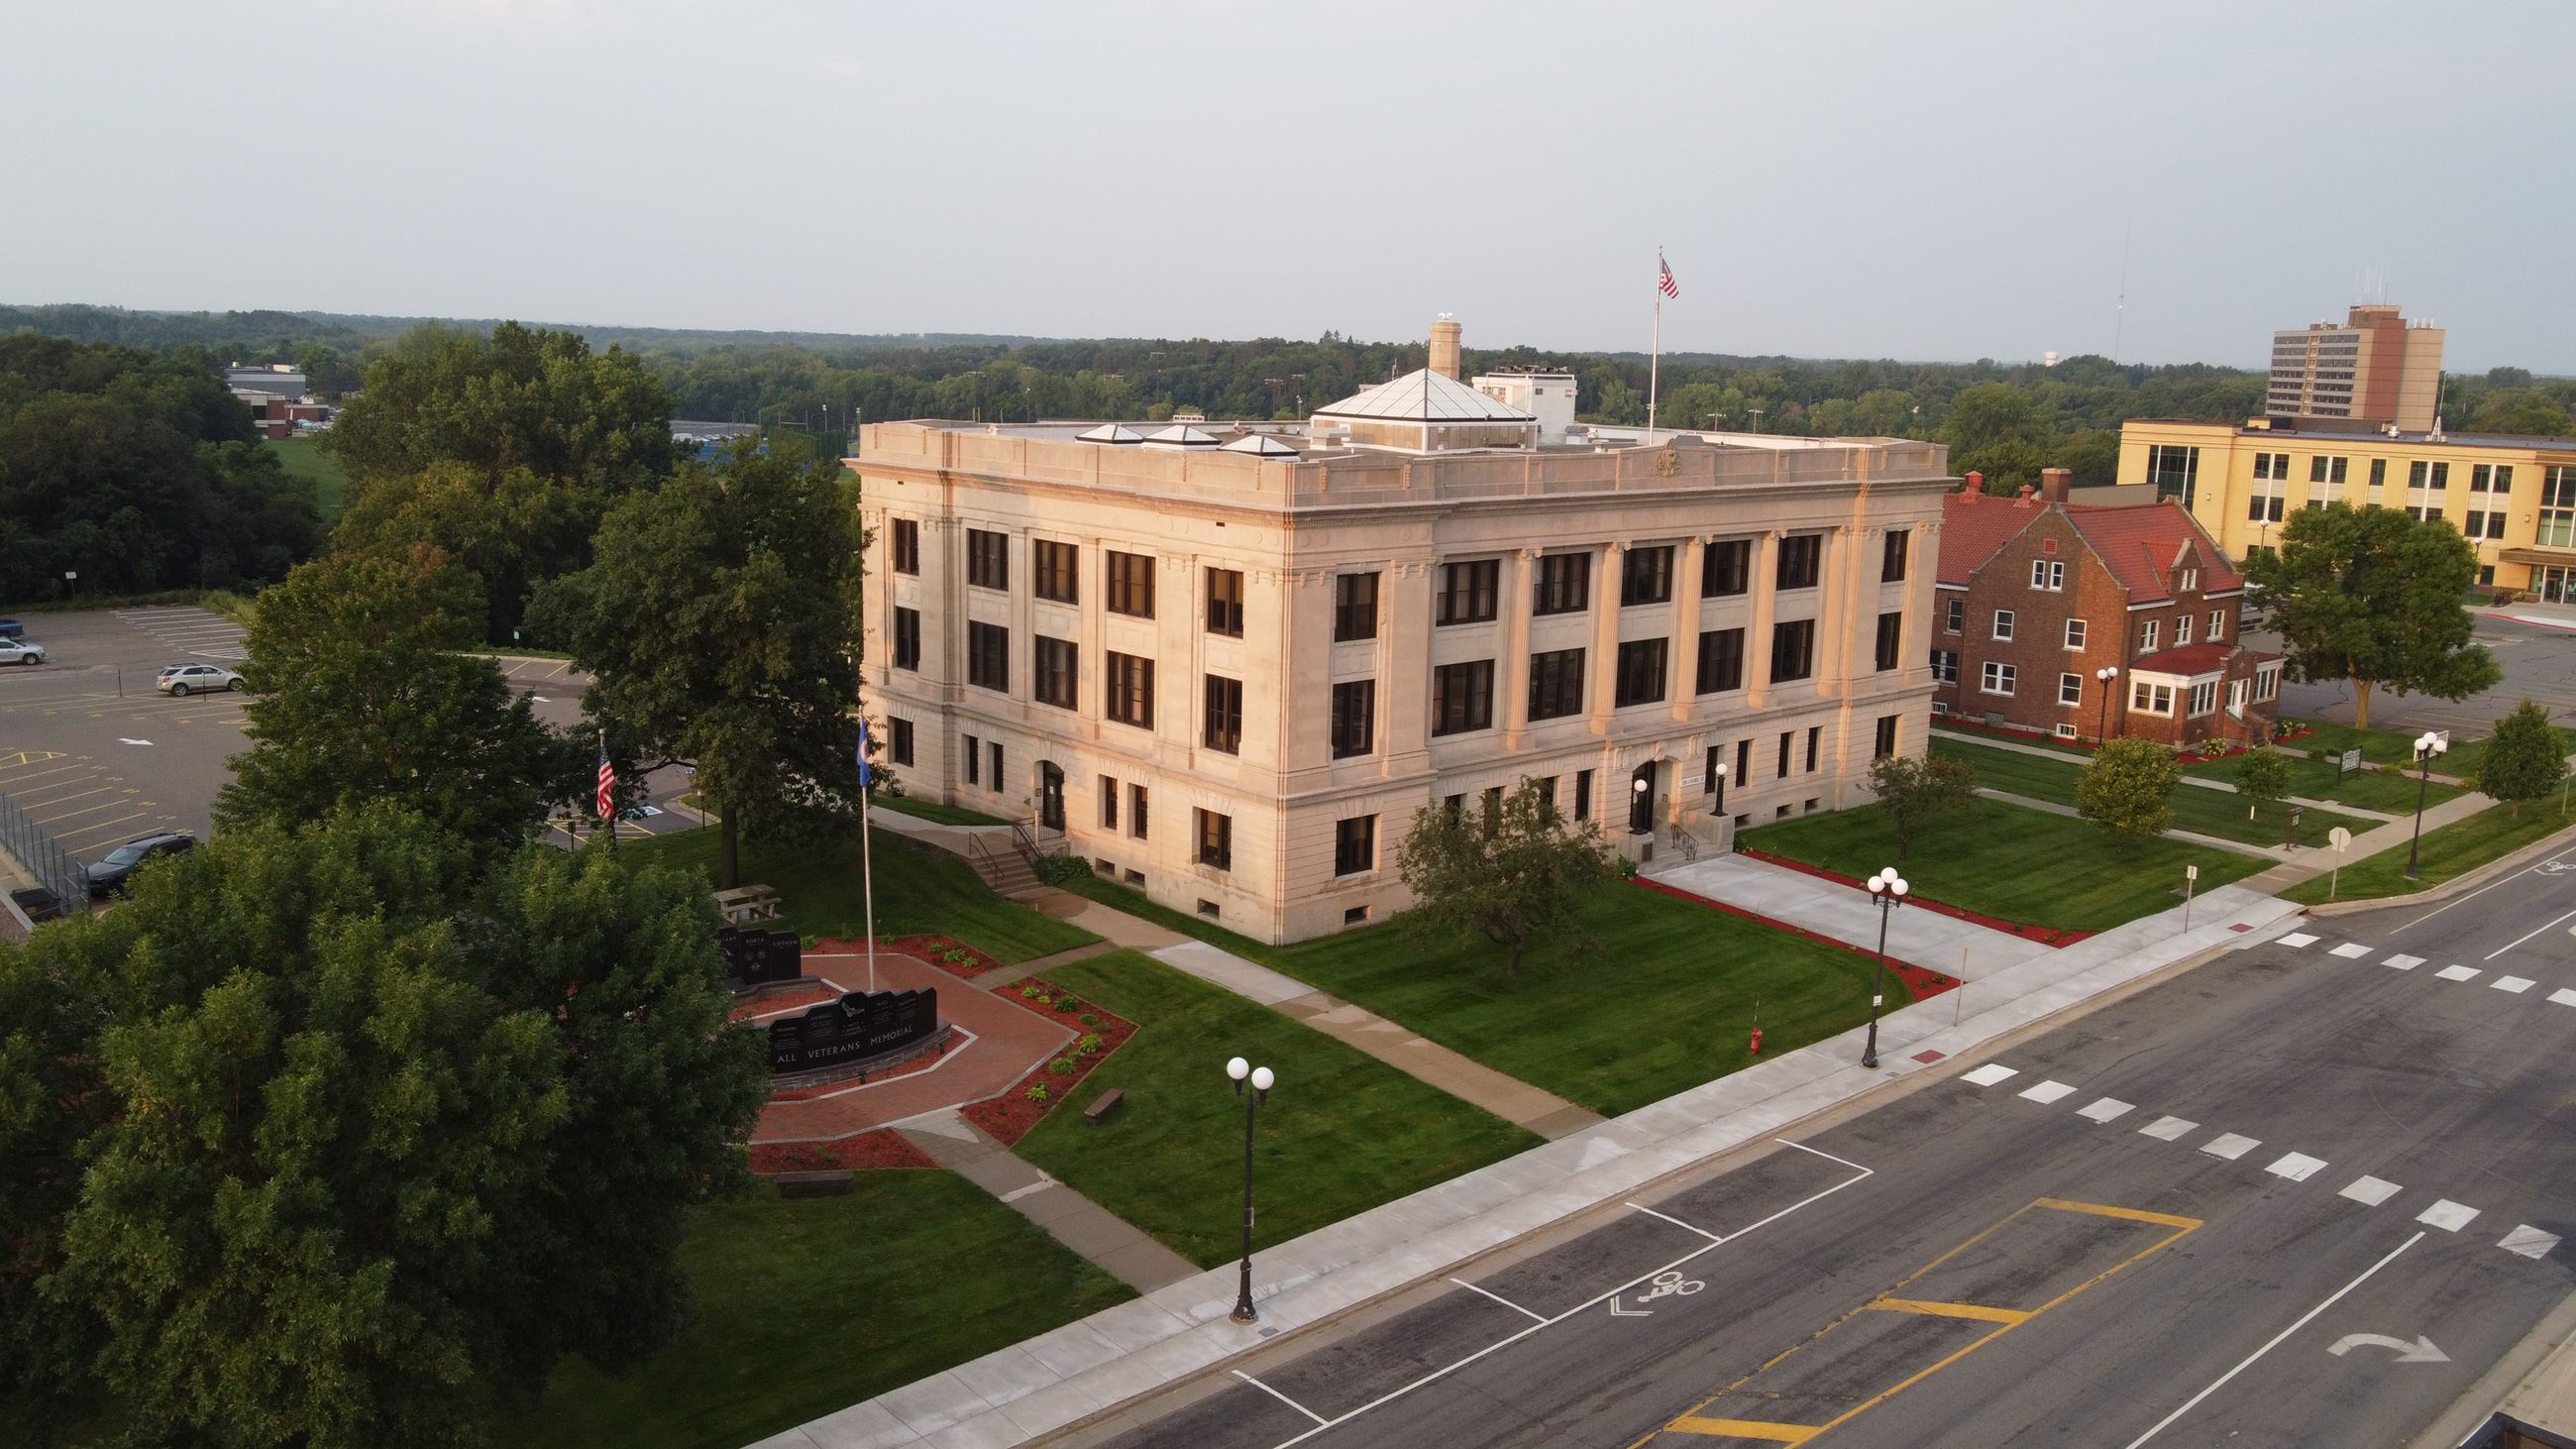 Historic Courthouse aerial view